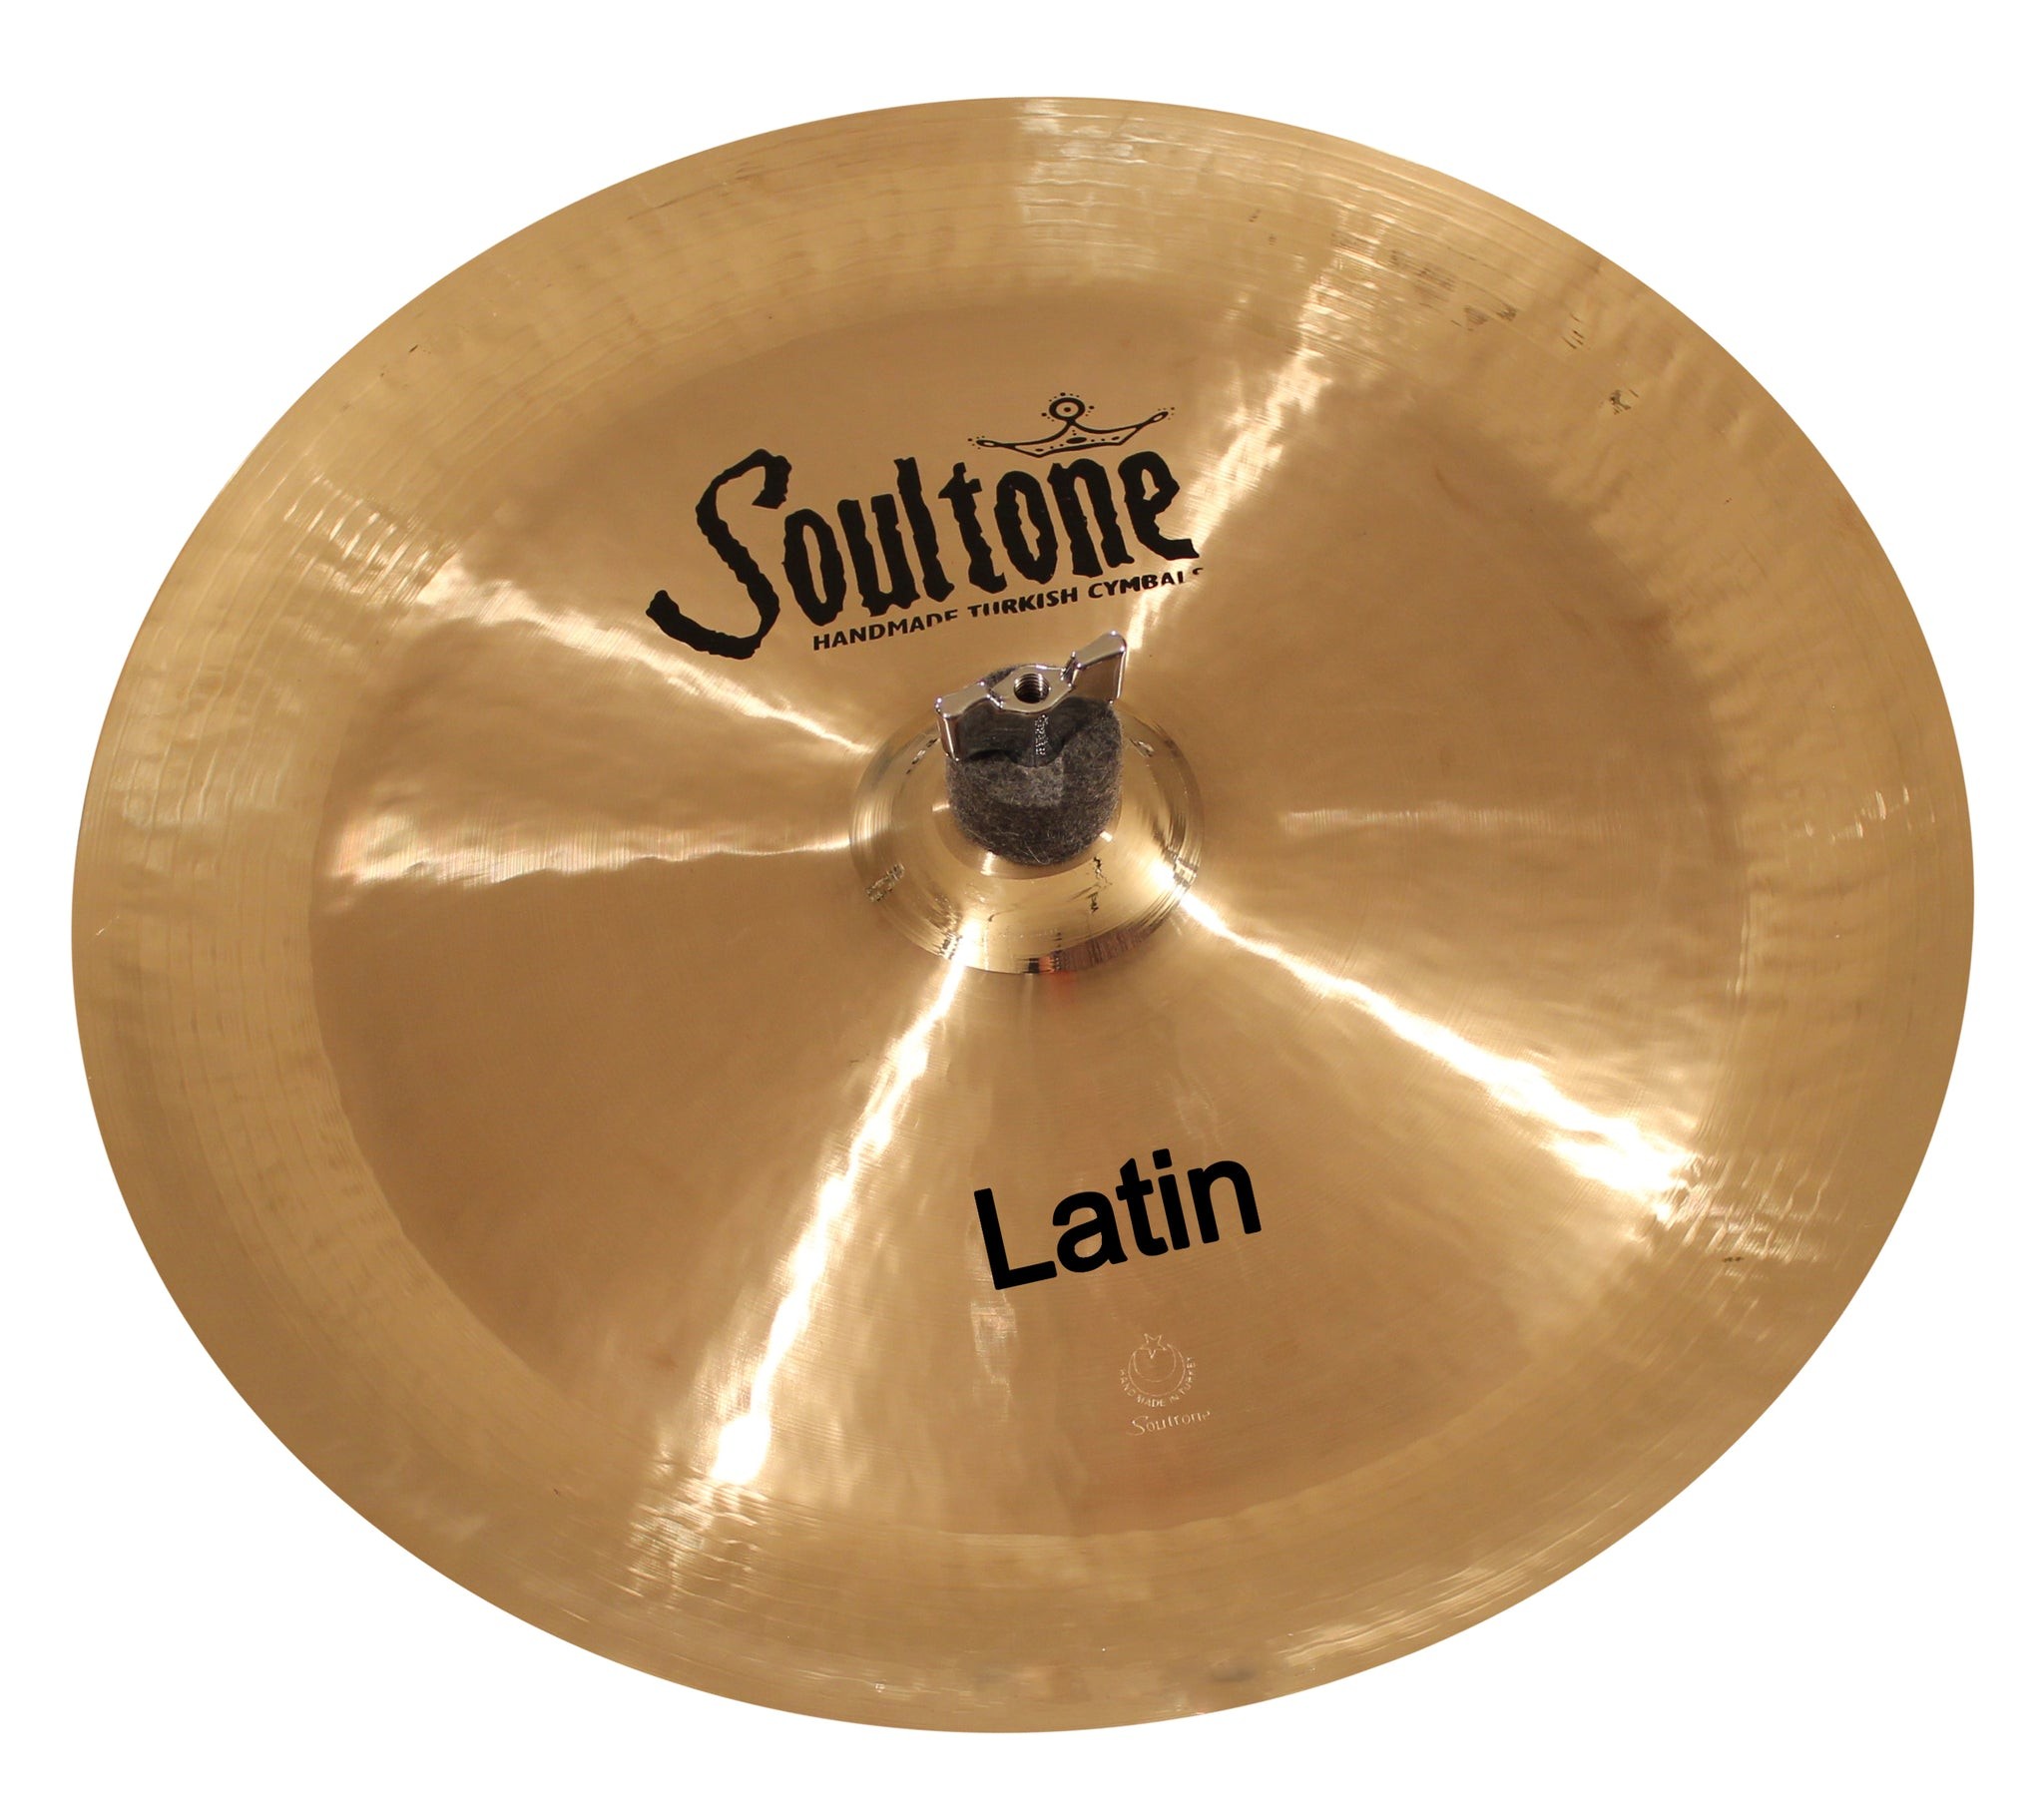 Soultone Cymbals Latin Prototype China